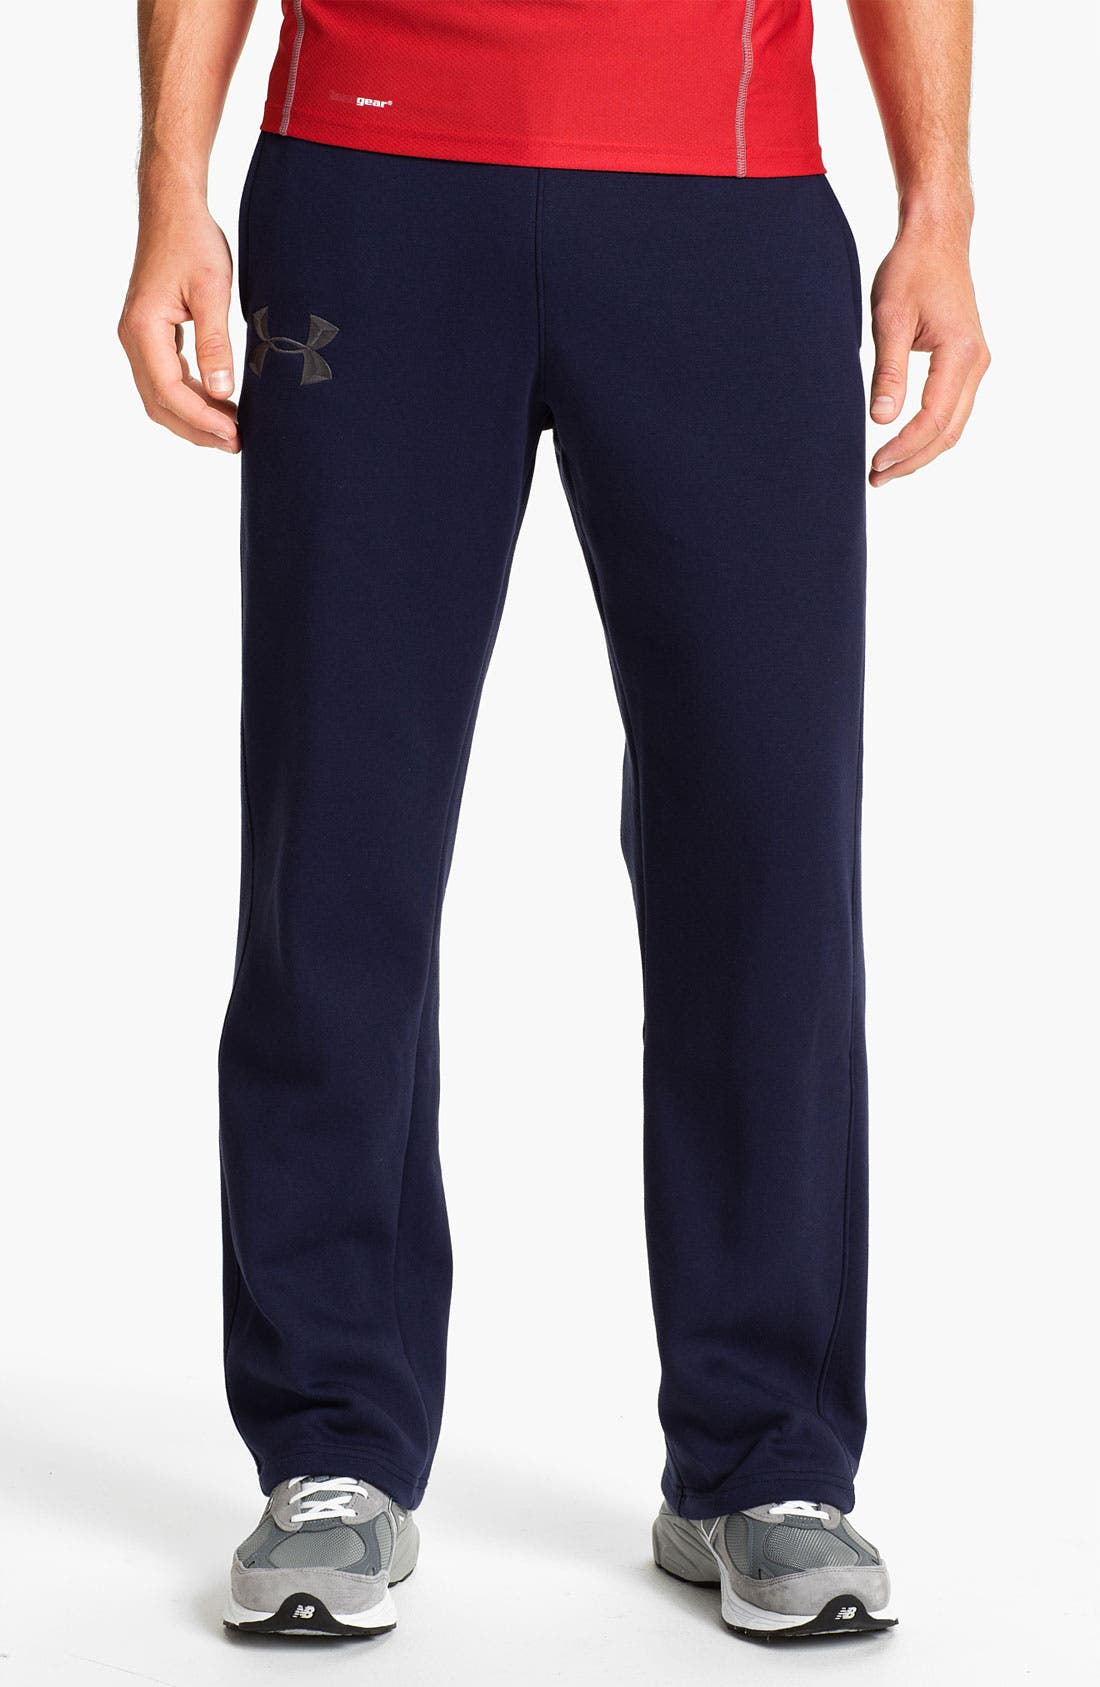 Main Image - Under Armour Charged Cotton® Storm Fleece Pants